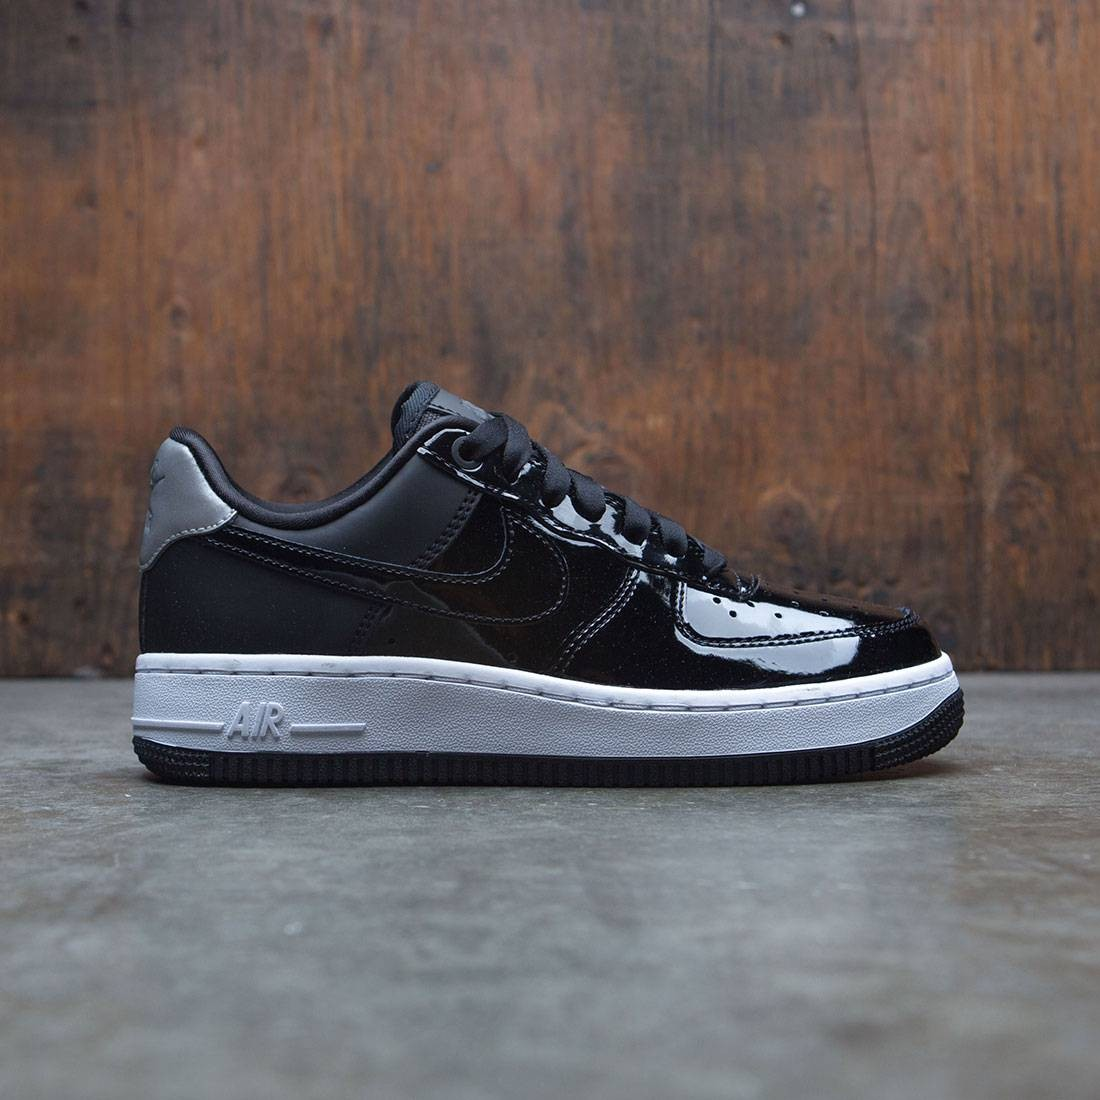 a3cdf7cfdab4 nike women air force 1  07 se premium black black reflect silver